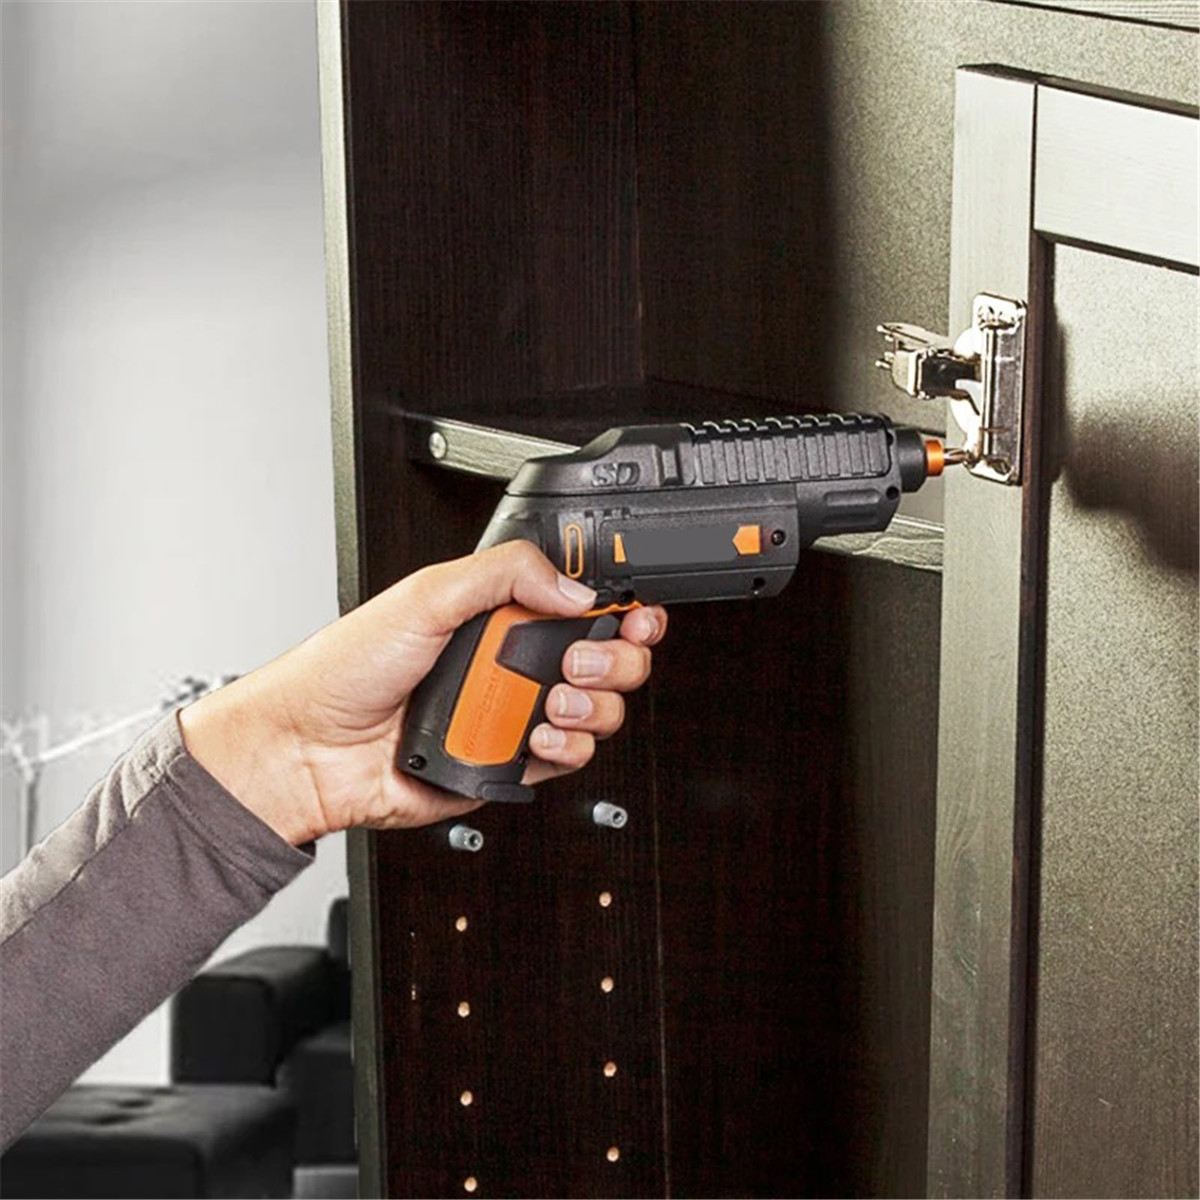 WORX® 4V Lithium Electric Screwdriver Cordless Slide Driver Household Rechargeable Screwdriver